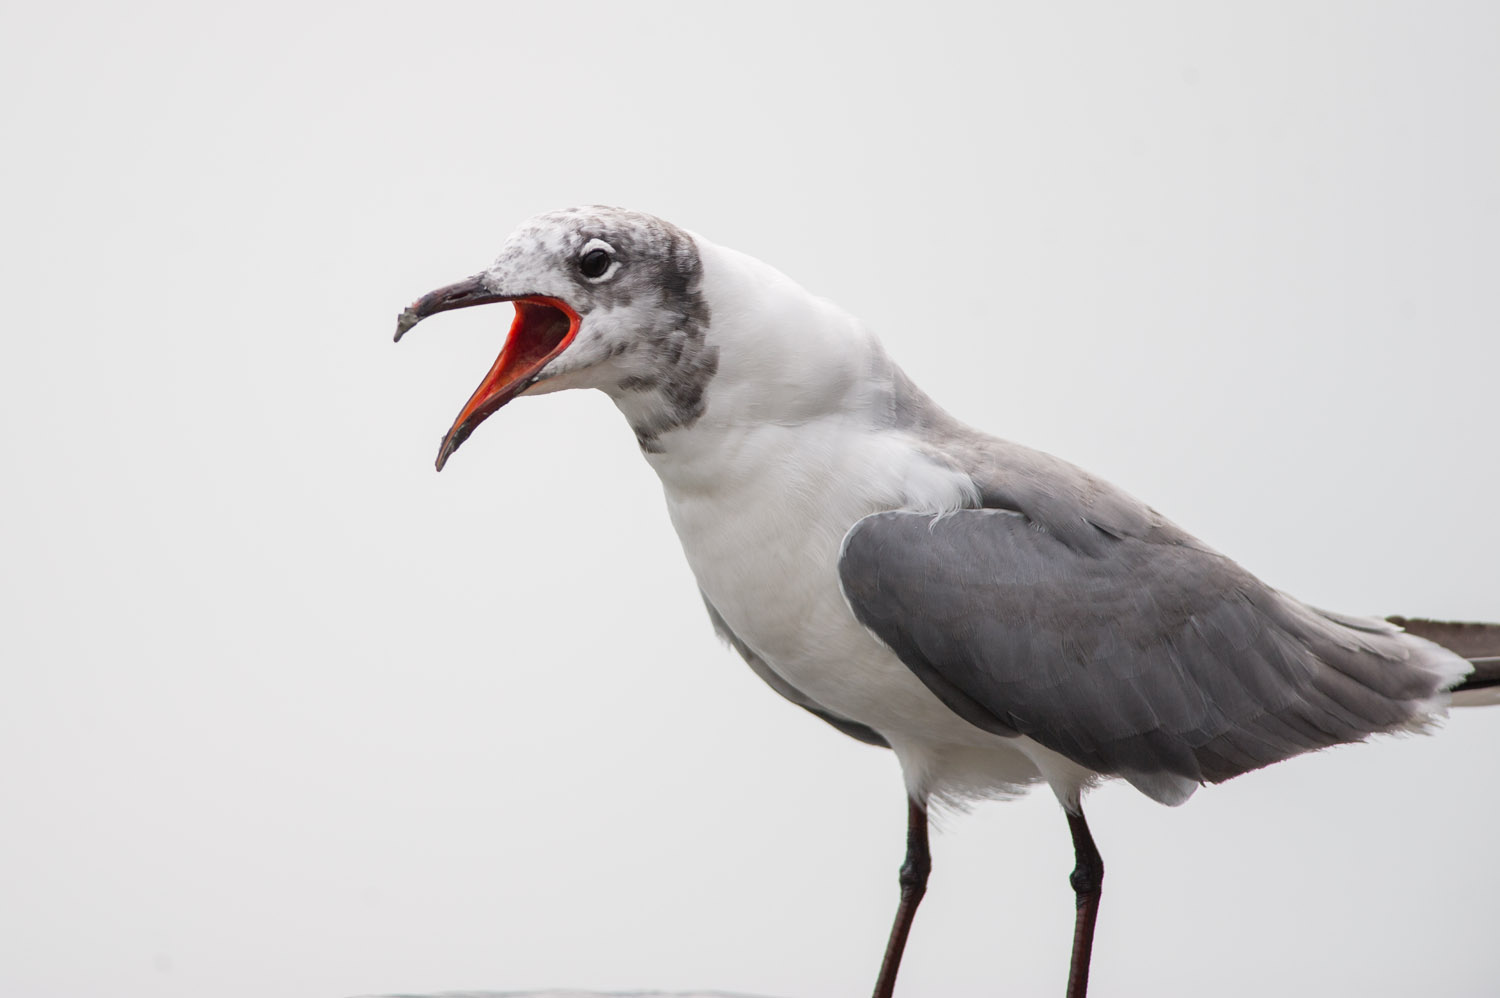 A handsome Laughing Gull squawking at me while I was throwing bread around.